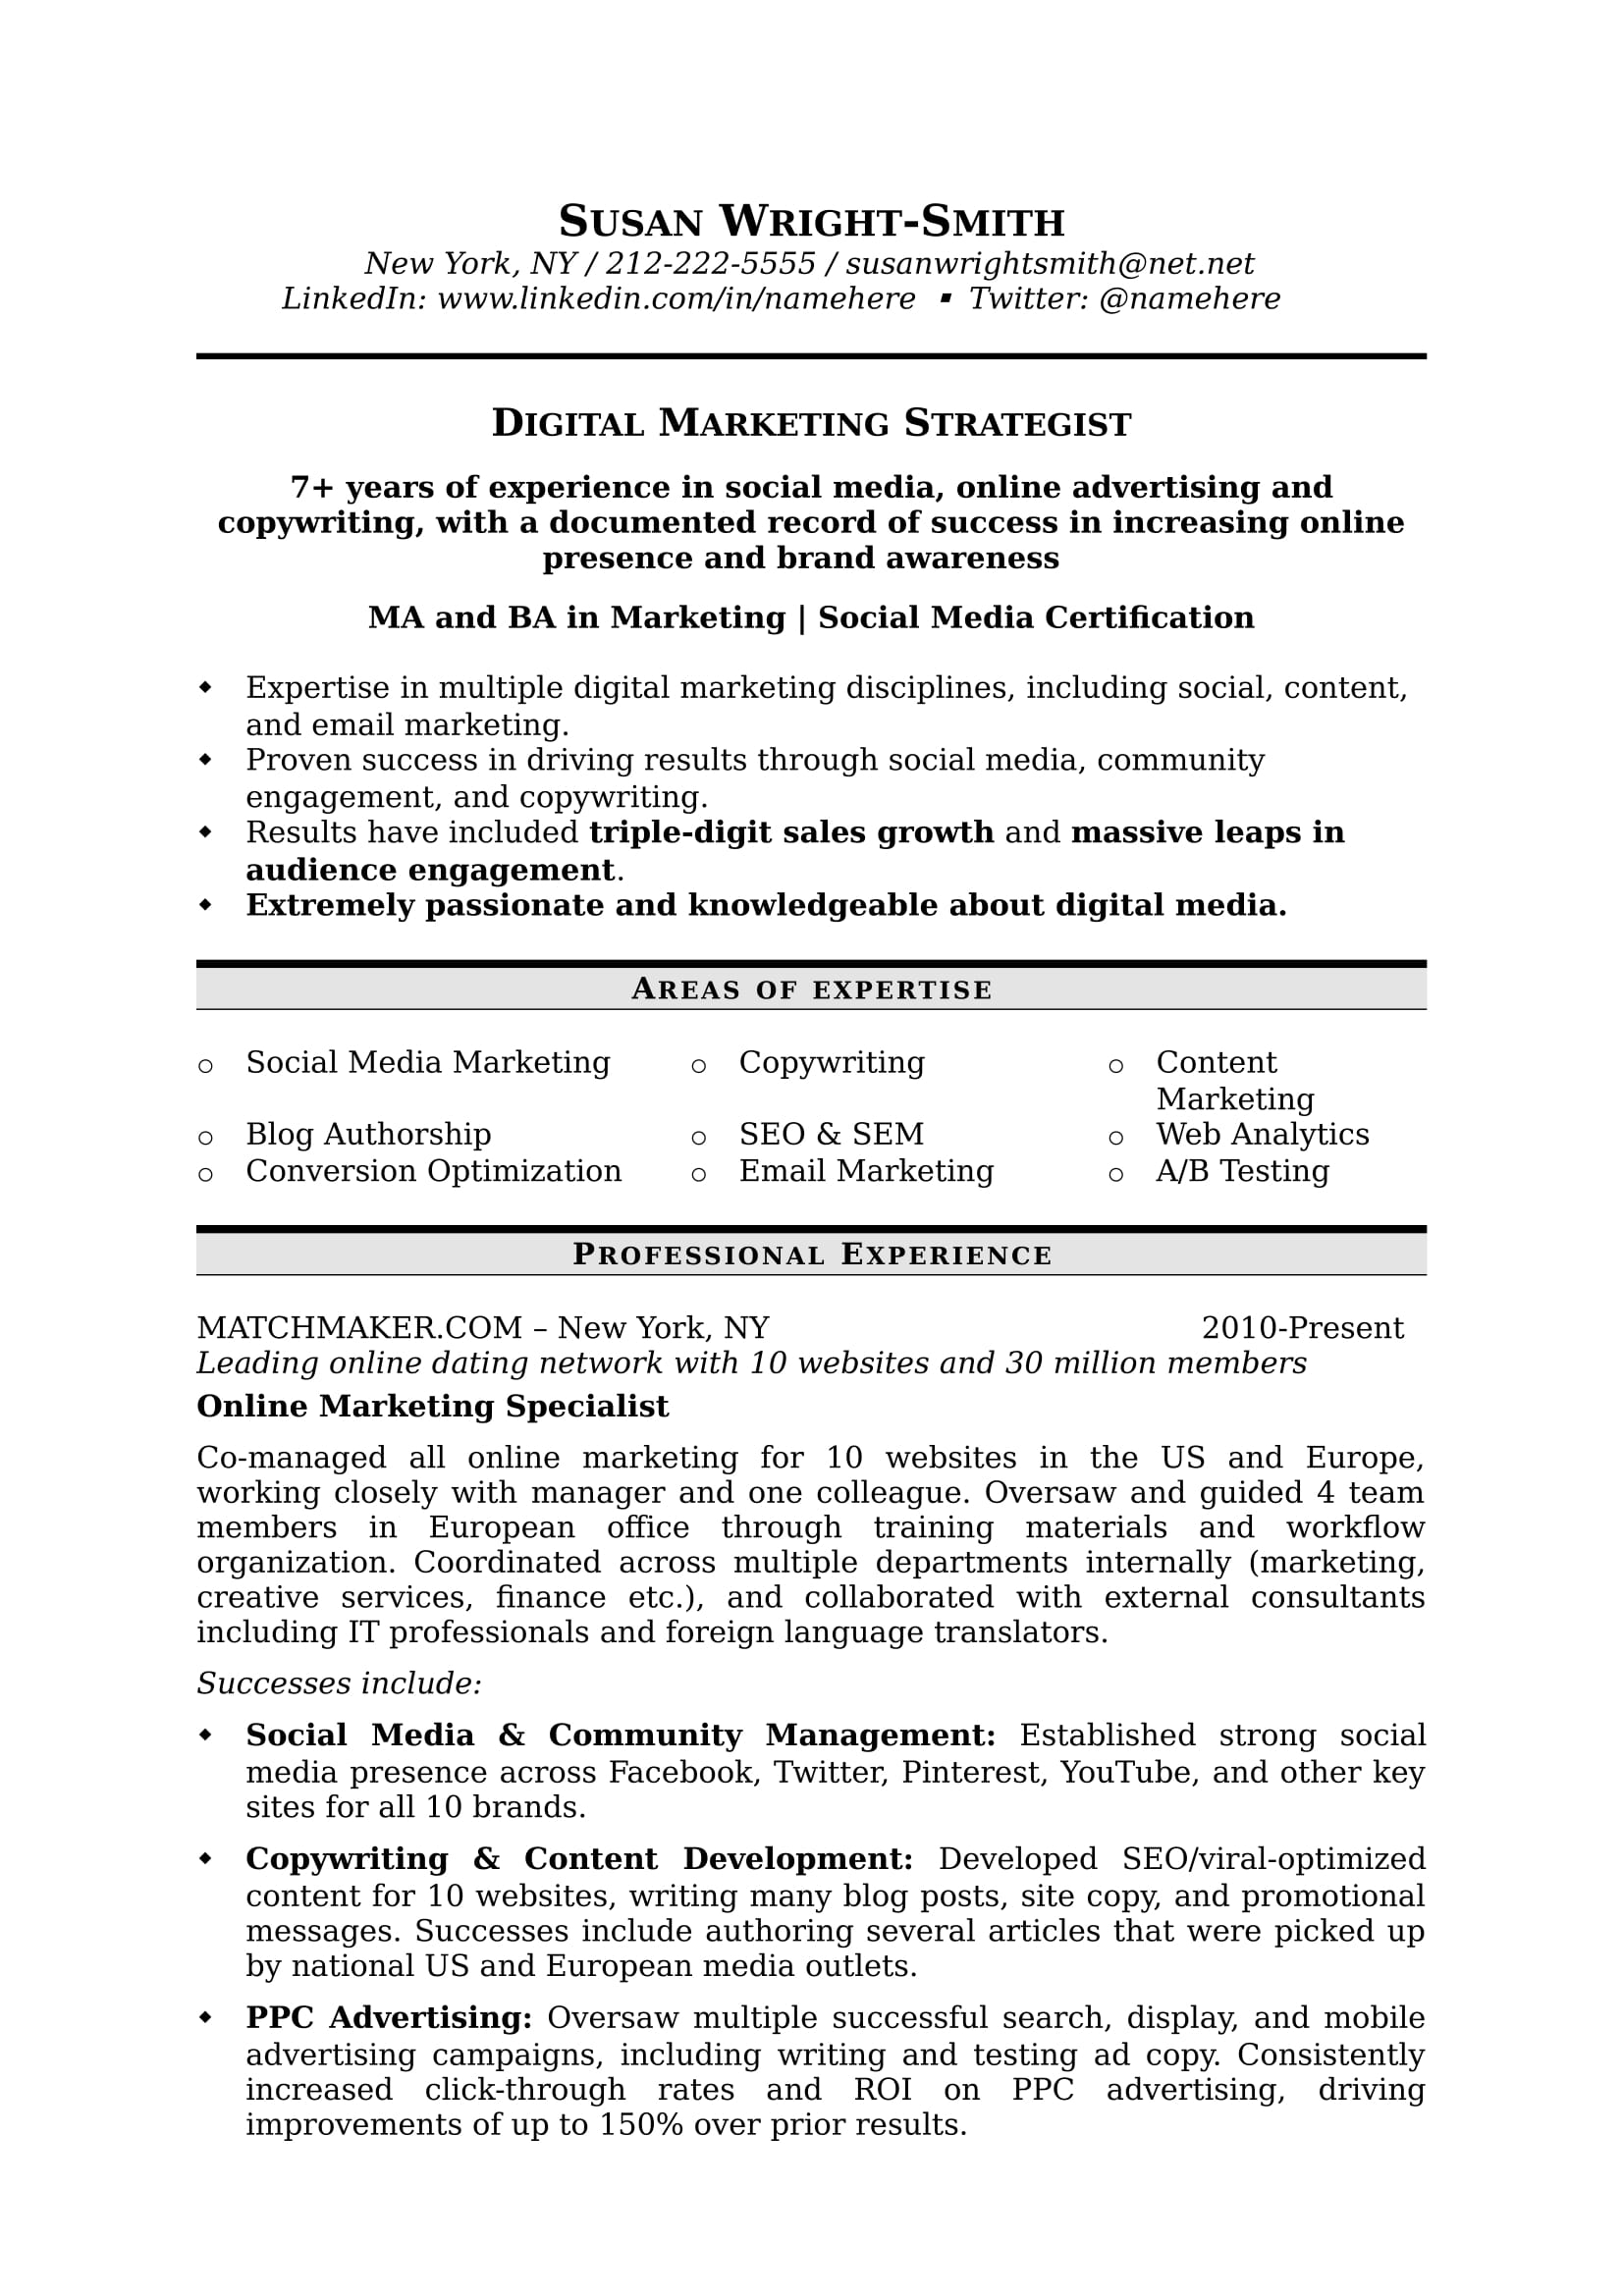 Marketing Manager Cover Letter. 10 Marketing Resume Samples Hiring